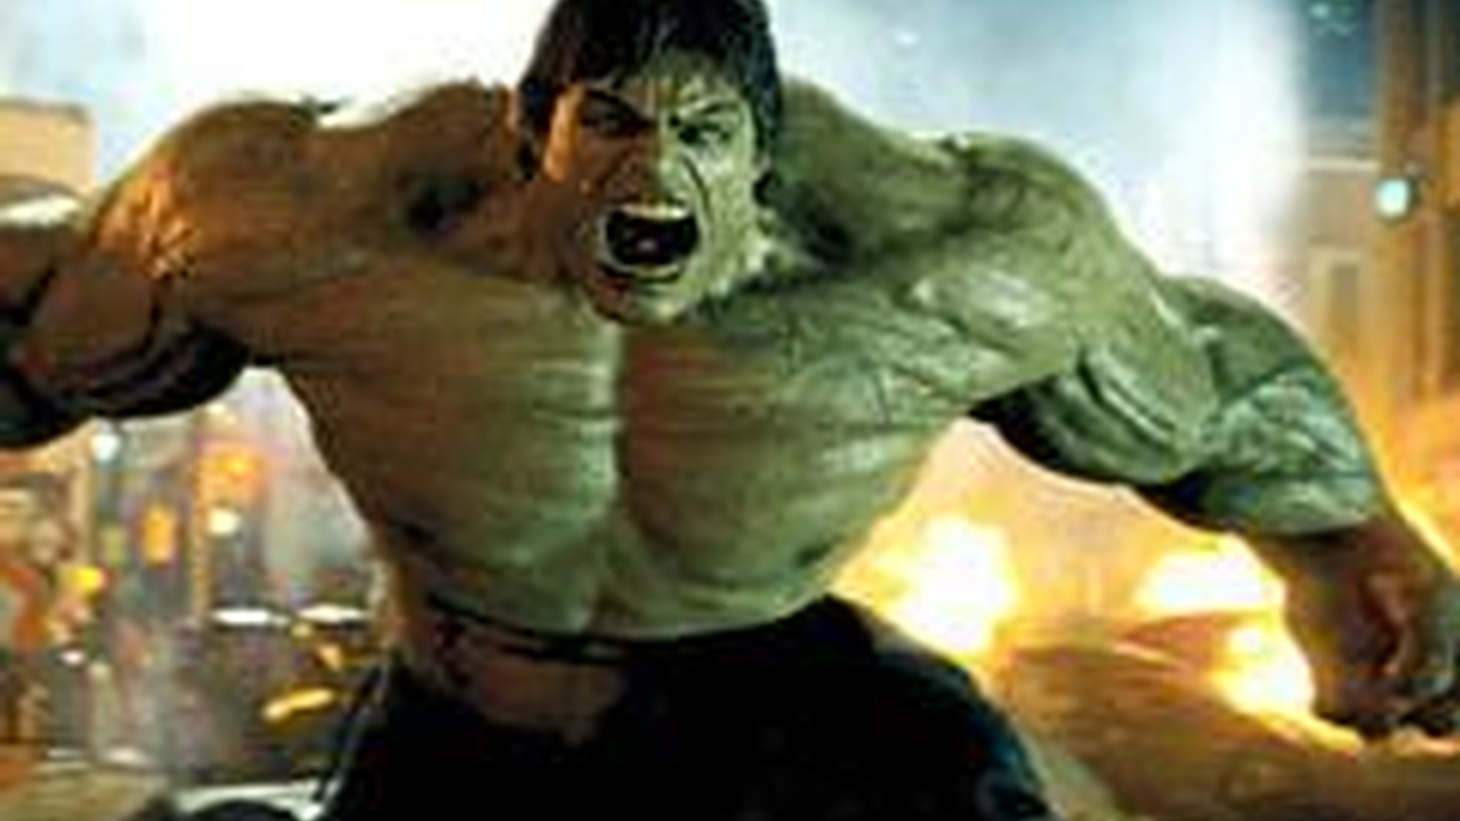 Joe Morgenstern, film critic for the Wall Street Journal, reviews The Incredible Hulk and The Happening.